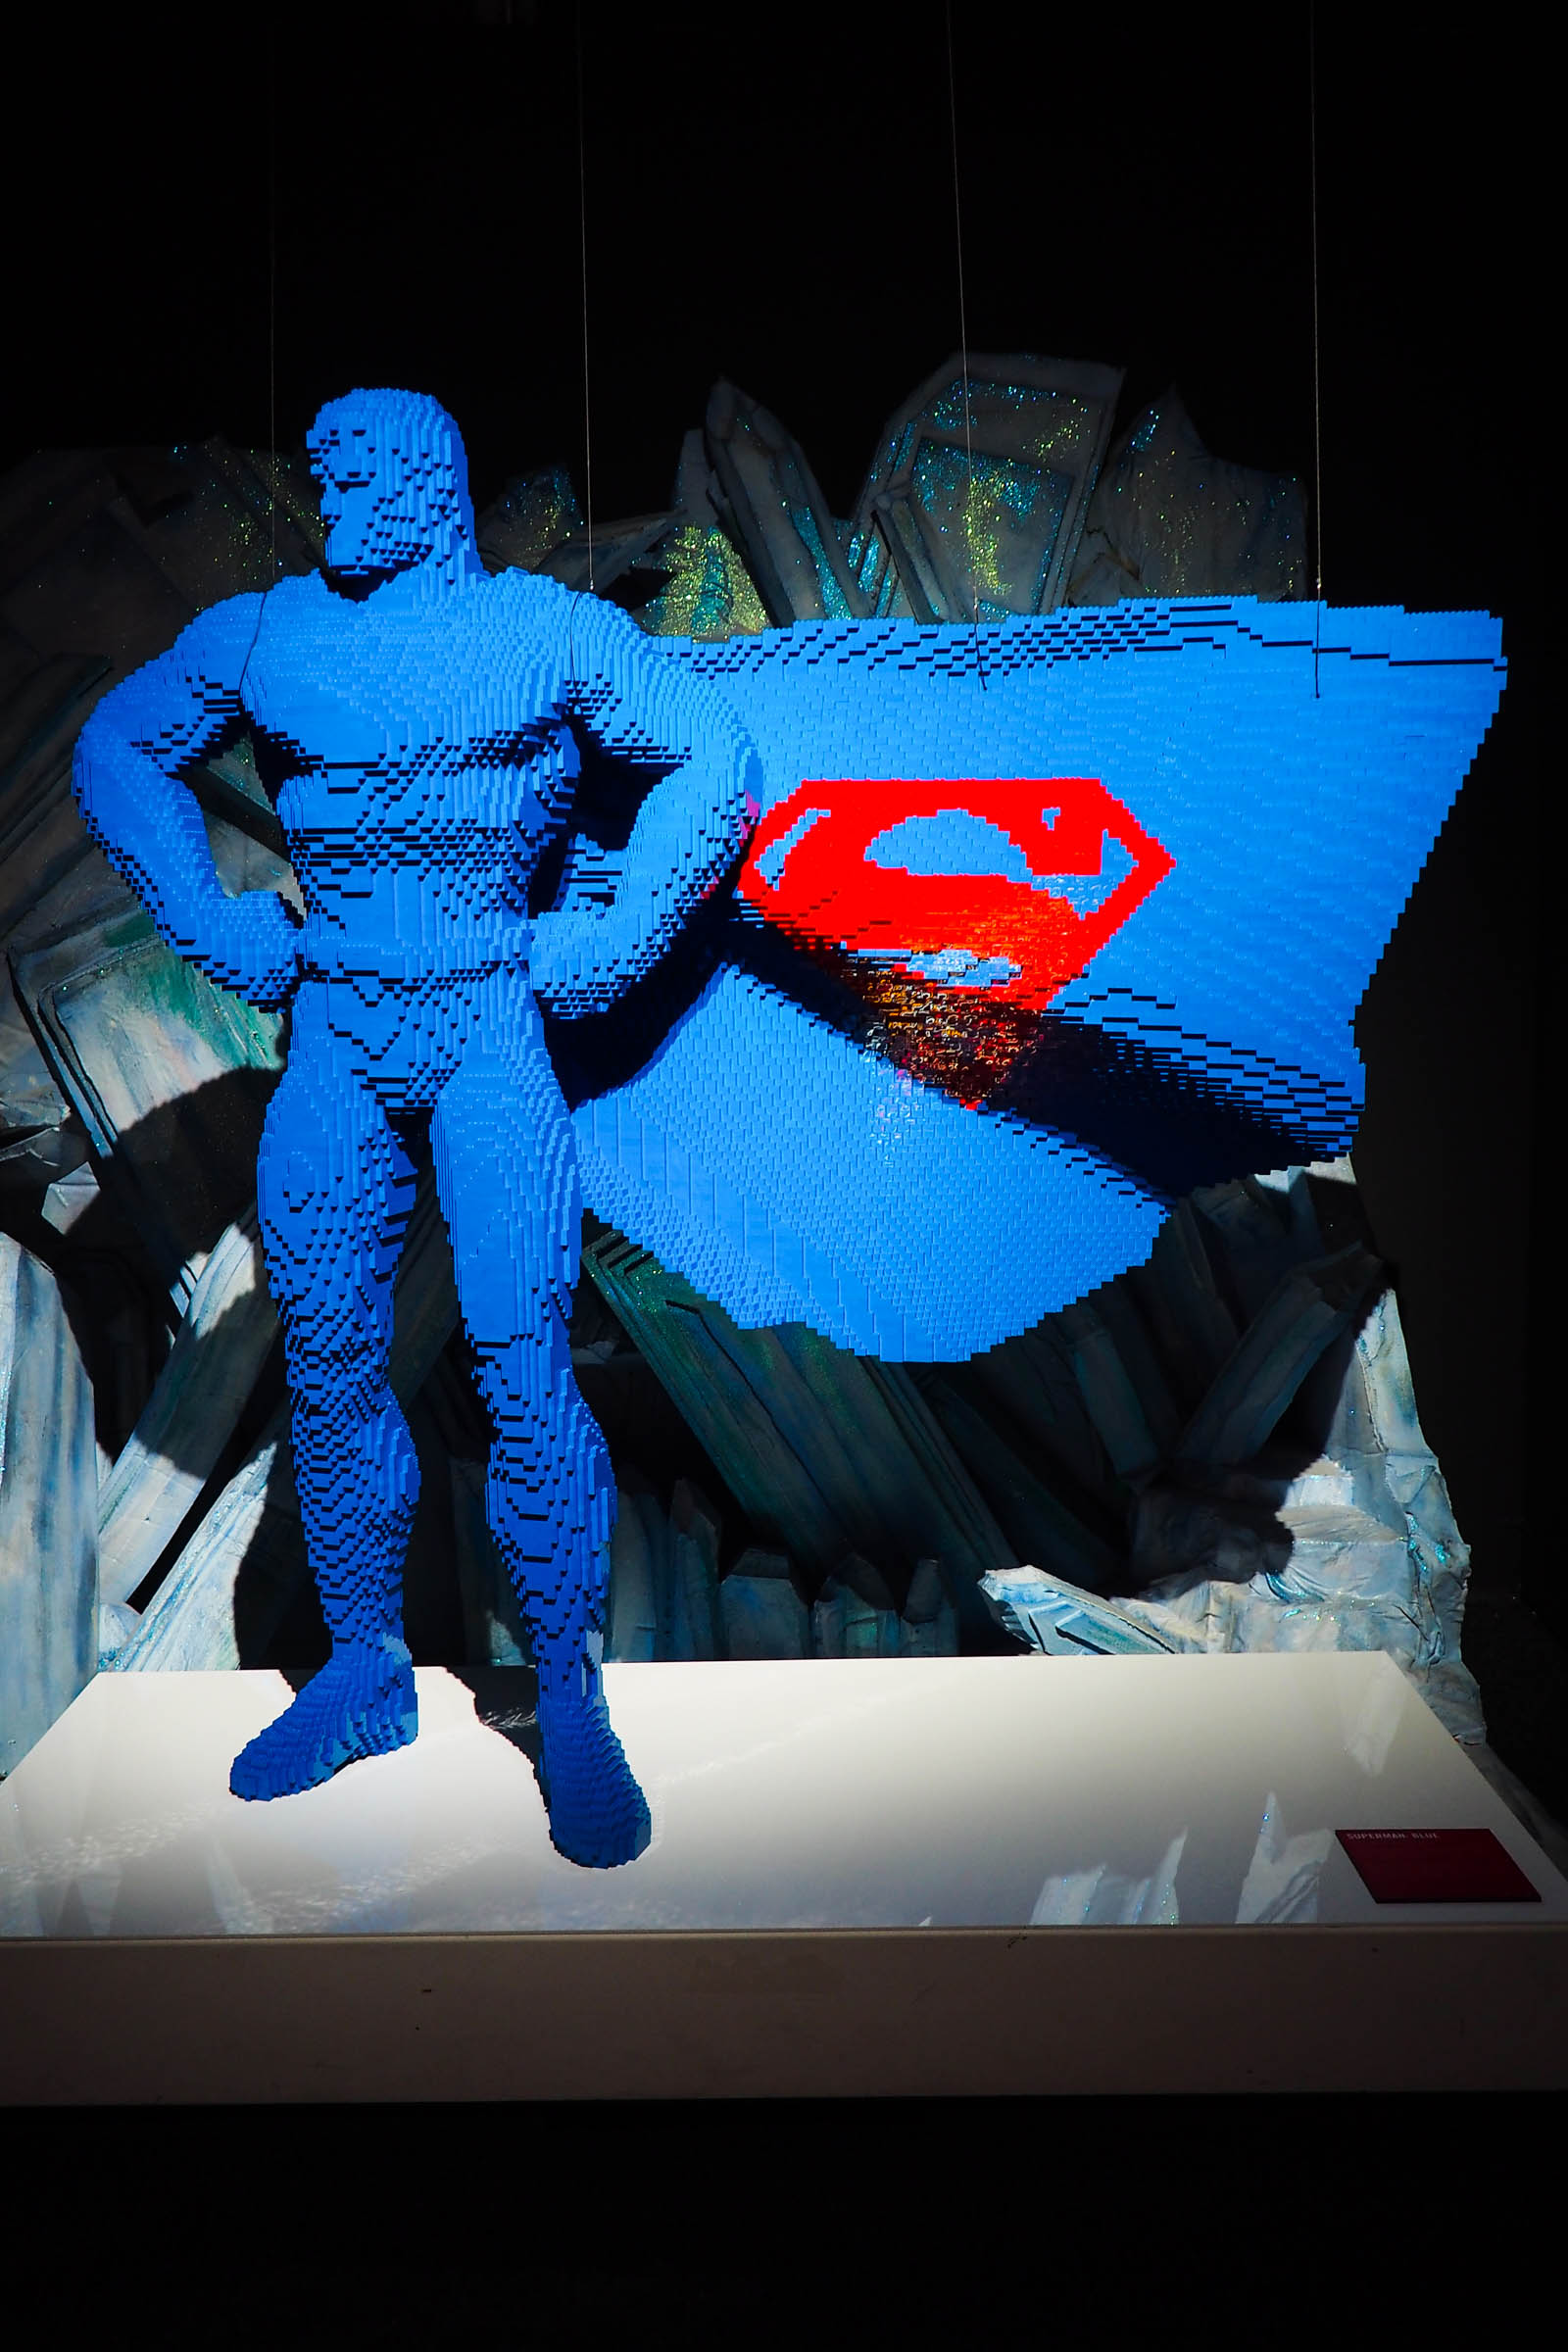 I took my family to visit the Art Of The Brick lego exhibition of DC comic characters on London's Southbank.